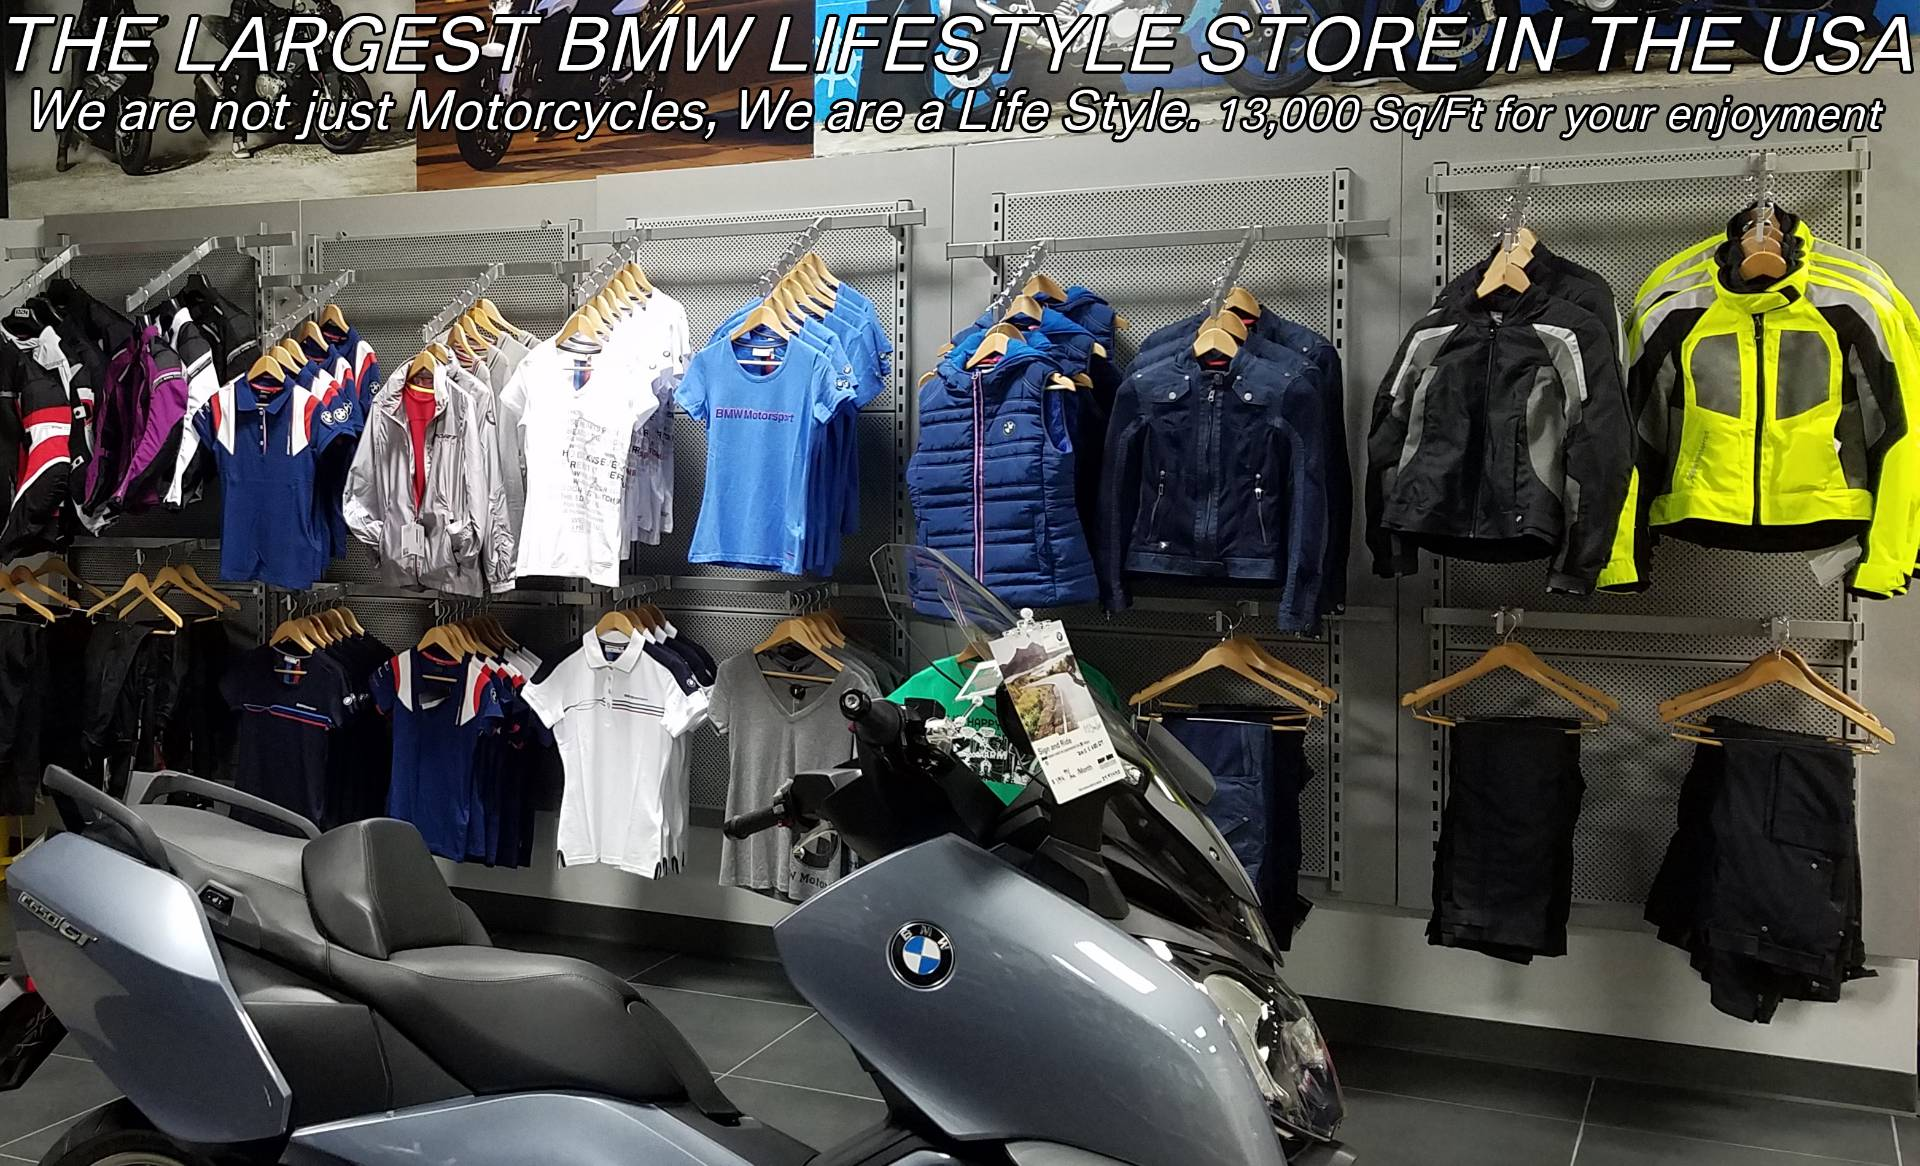 Used 2016 BMW R NineT for sale, BMW for sale, BMW Motorcycle Café Racer, new BMW Caffe, Cafe Racer, BMW. BMW Motorcycles of Miami, Motorcycles of Miami, Motorcycles Miami, New Motorcycles, Used Motorcycles, pre-owned. #BMWMotorcyclesOfMiami #MotorcyclesOfMiami. - Photo 39